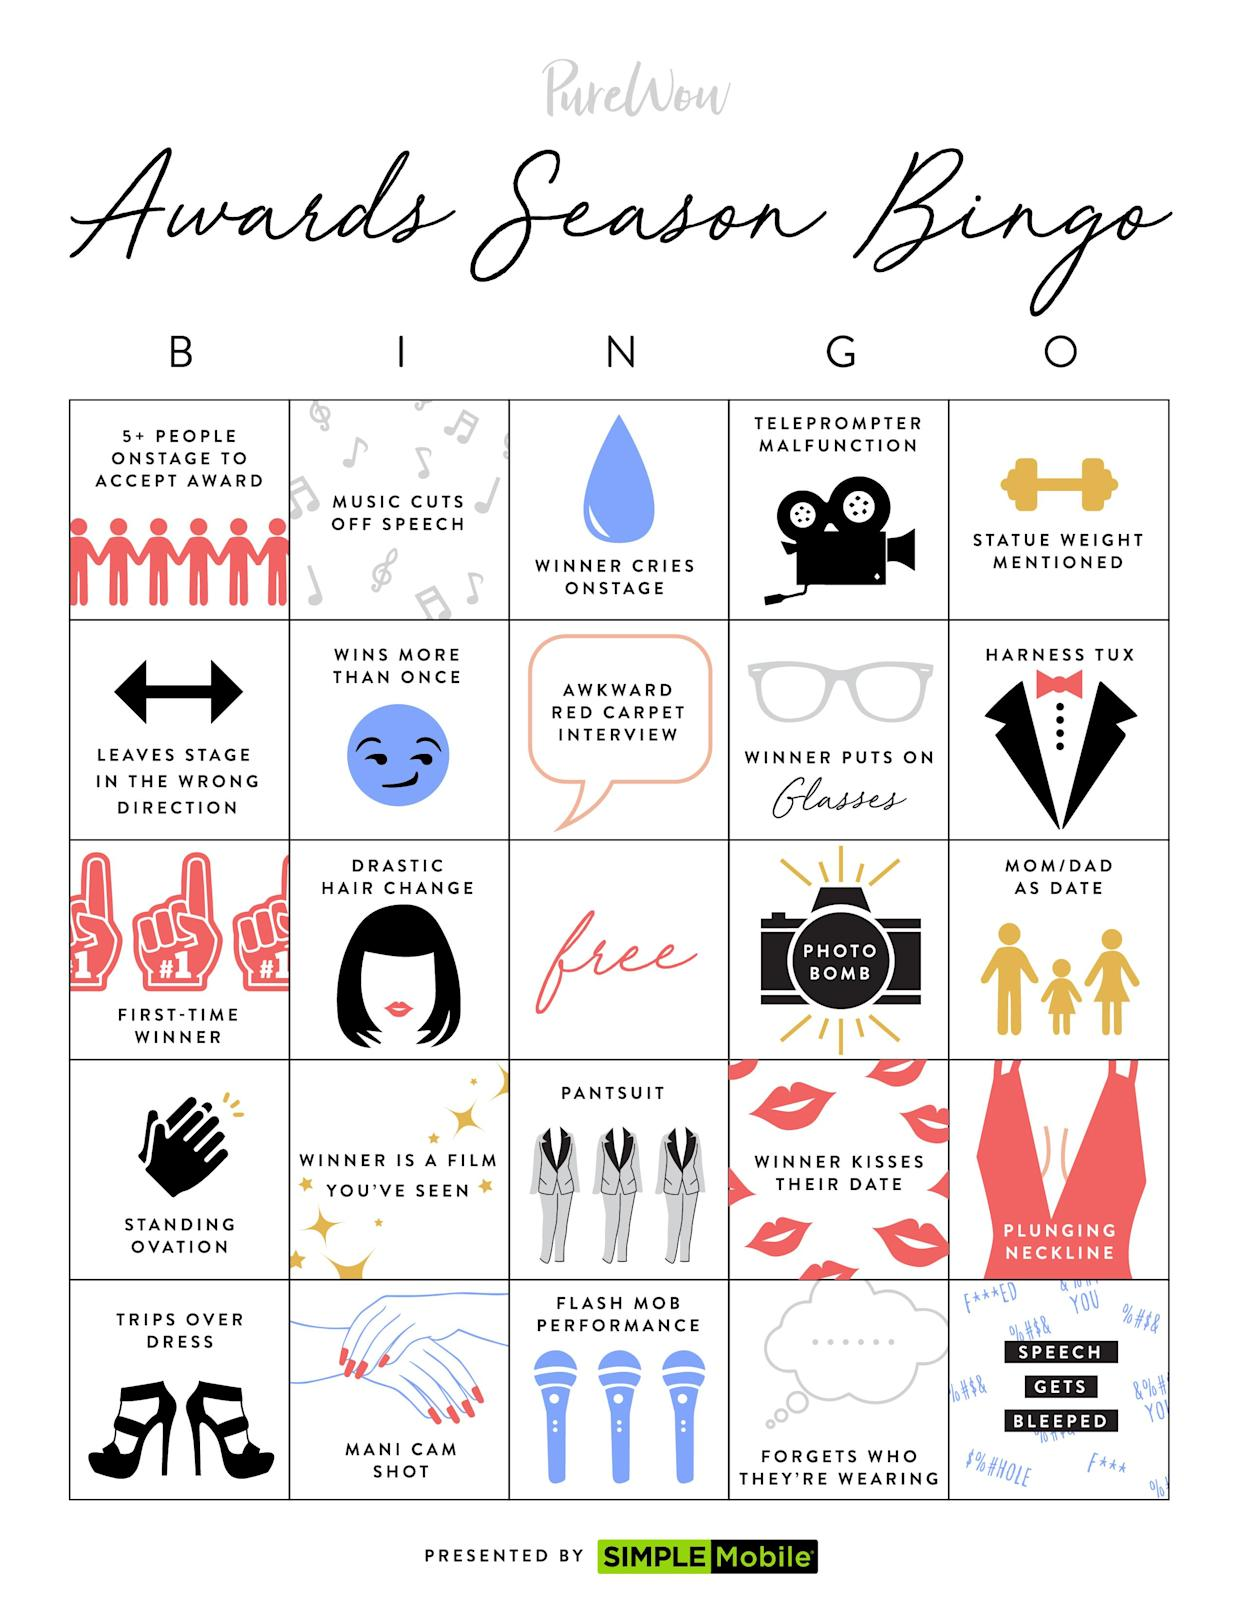 Close Out the 2019 Awards Season with Our Printable Bingo Board